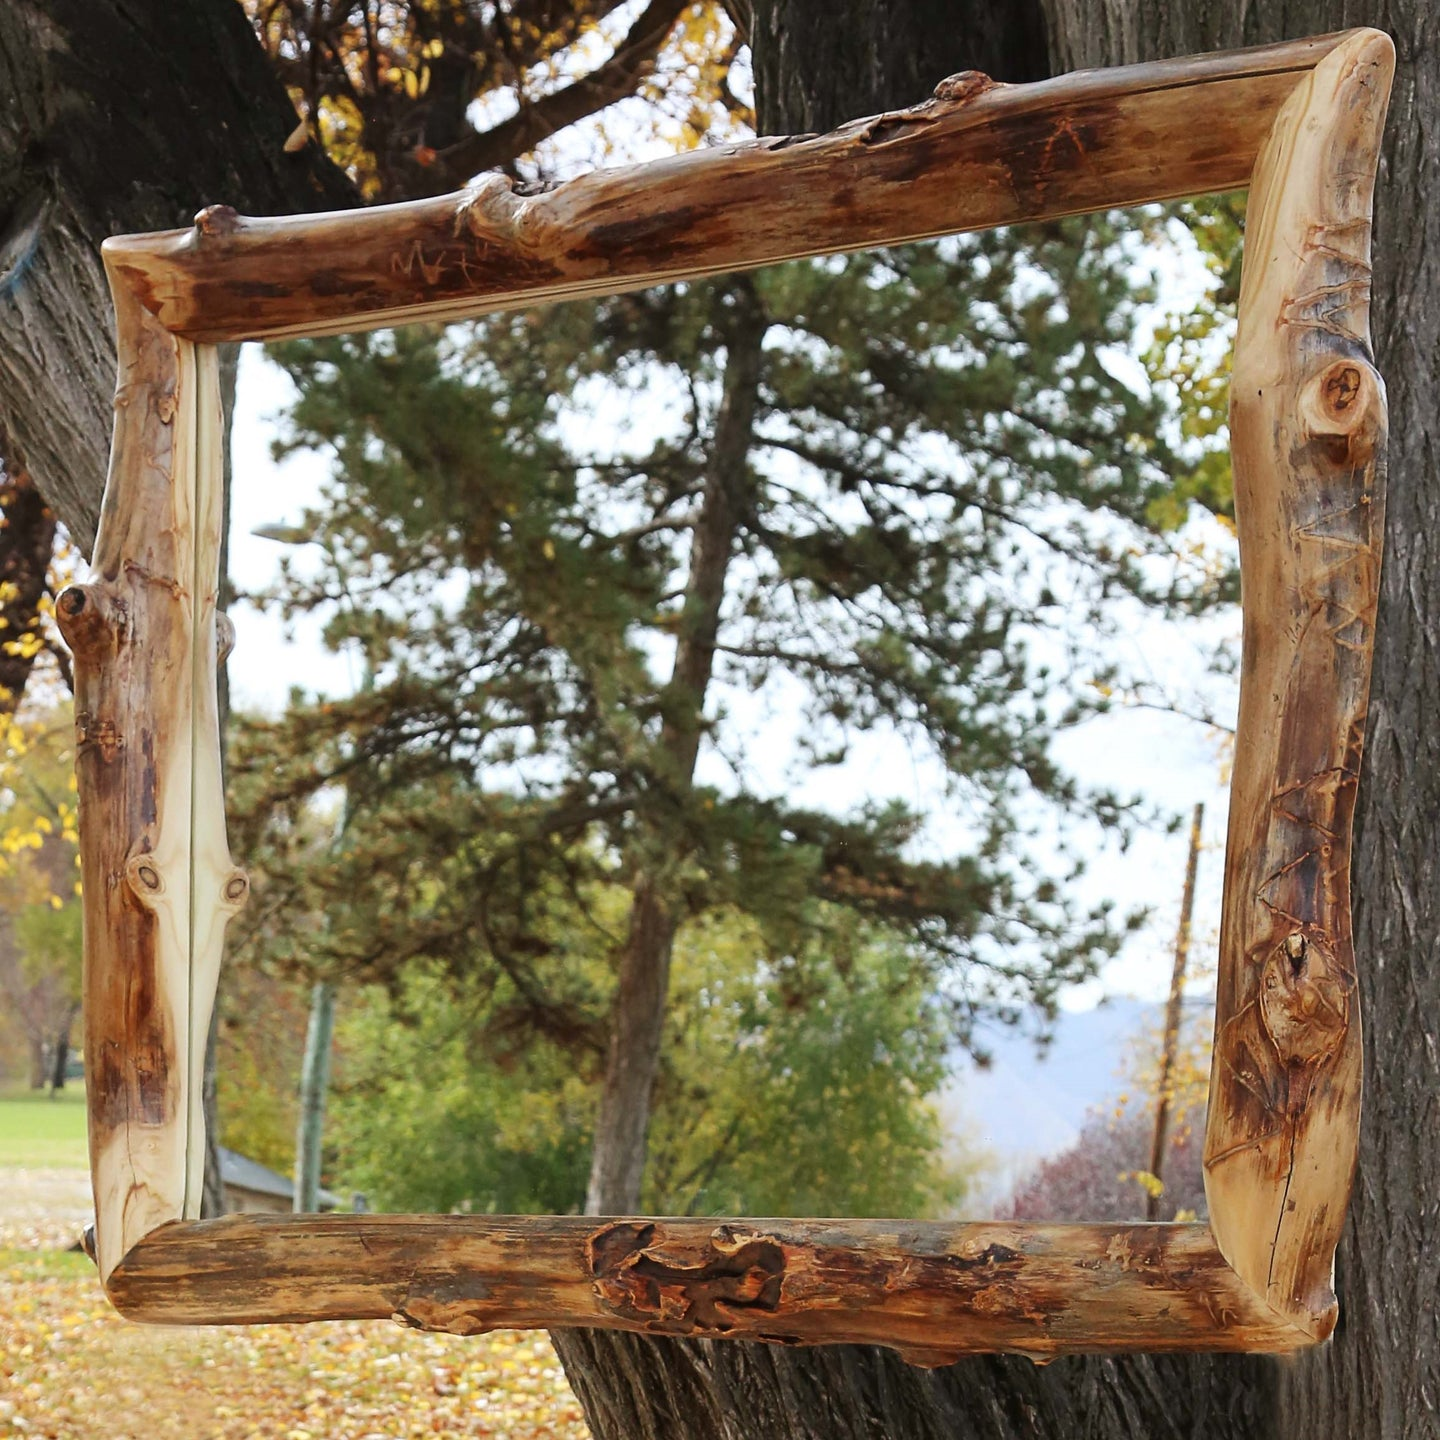 Gorgeous handcrafted solid wood modern Aspen mirror. Made in the U.S.A. from aspen or quakie logs. Very classy and comfortable. Will go great in any bedroom or cabin setting.